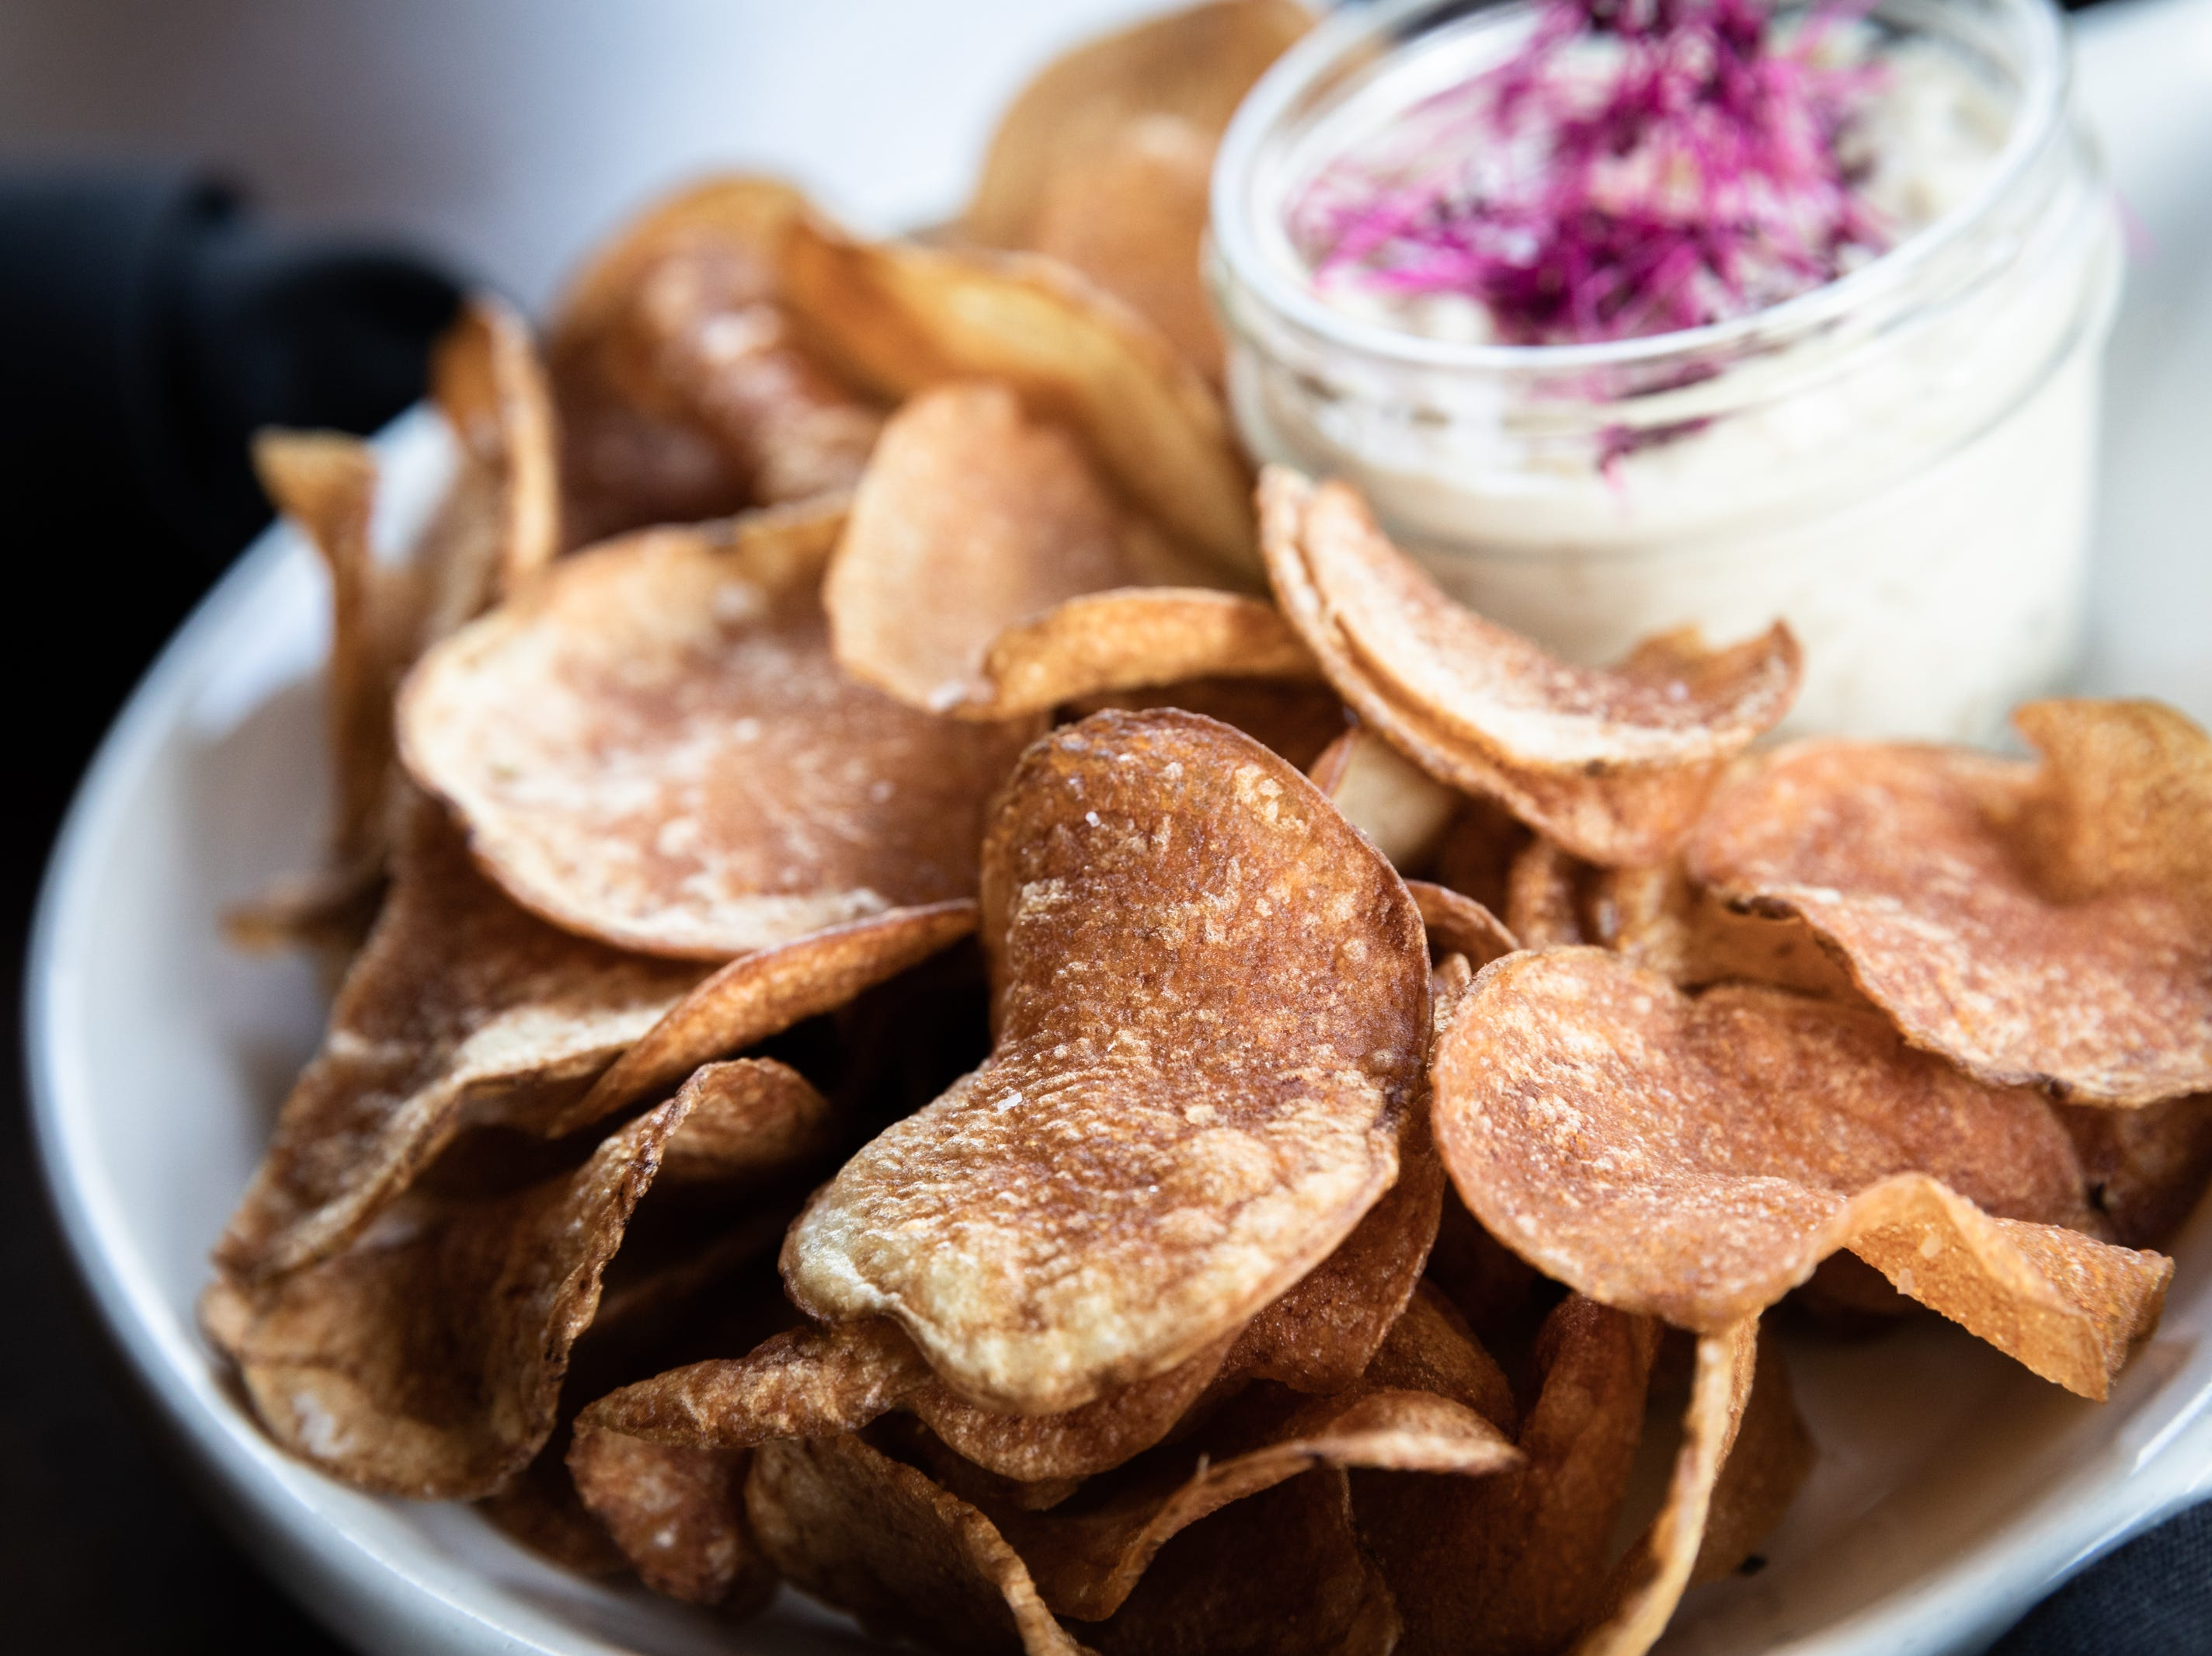 Bourbon caramelized onion dip with potato chips offered at Bone and Broth restaurant on Charlotte Street.